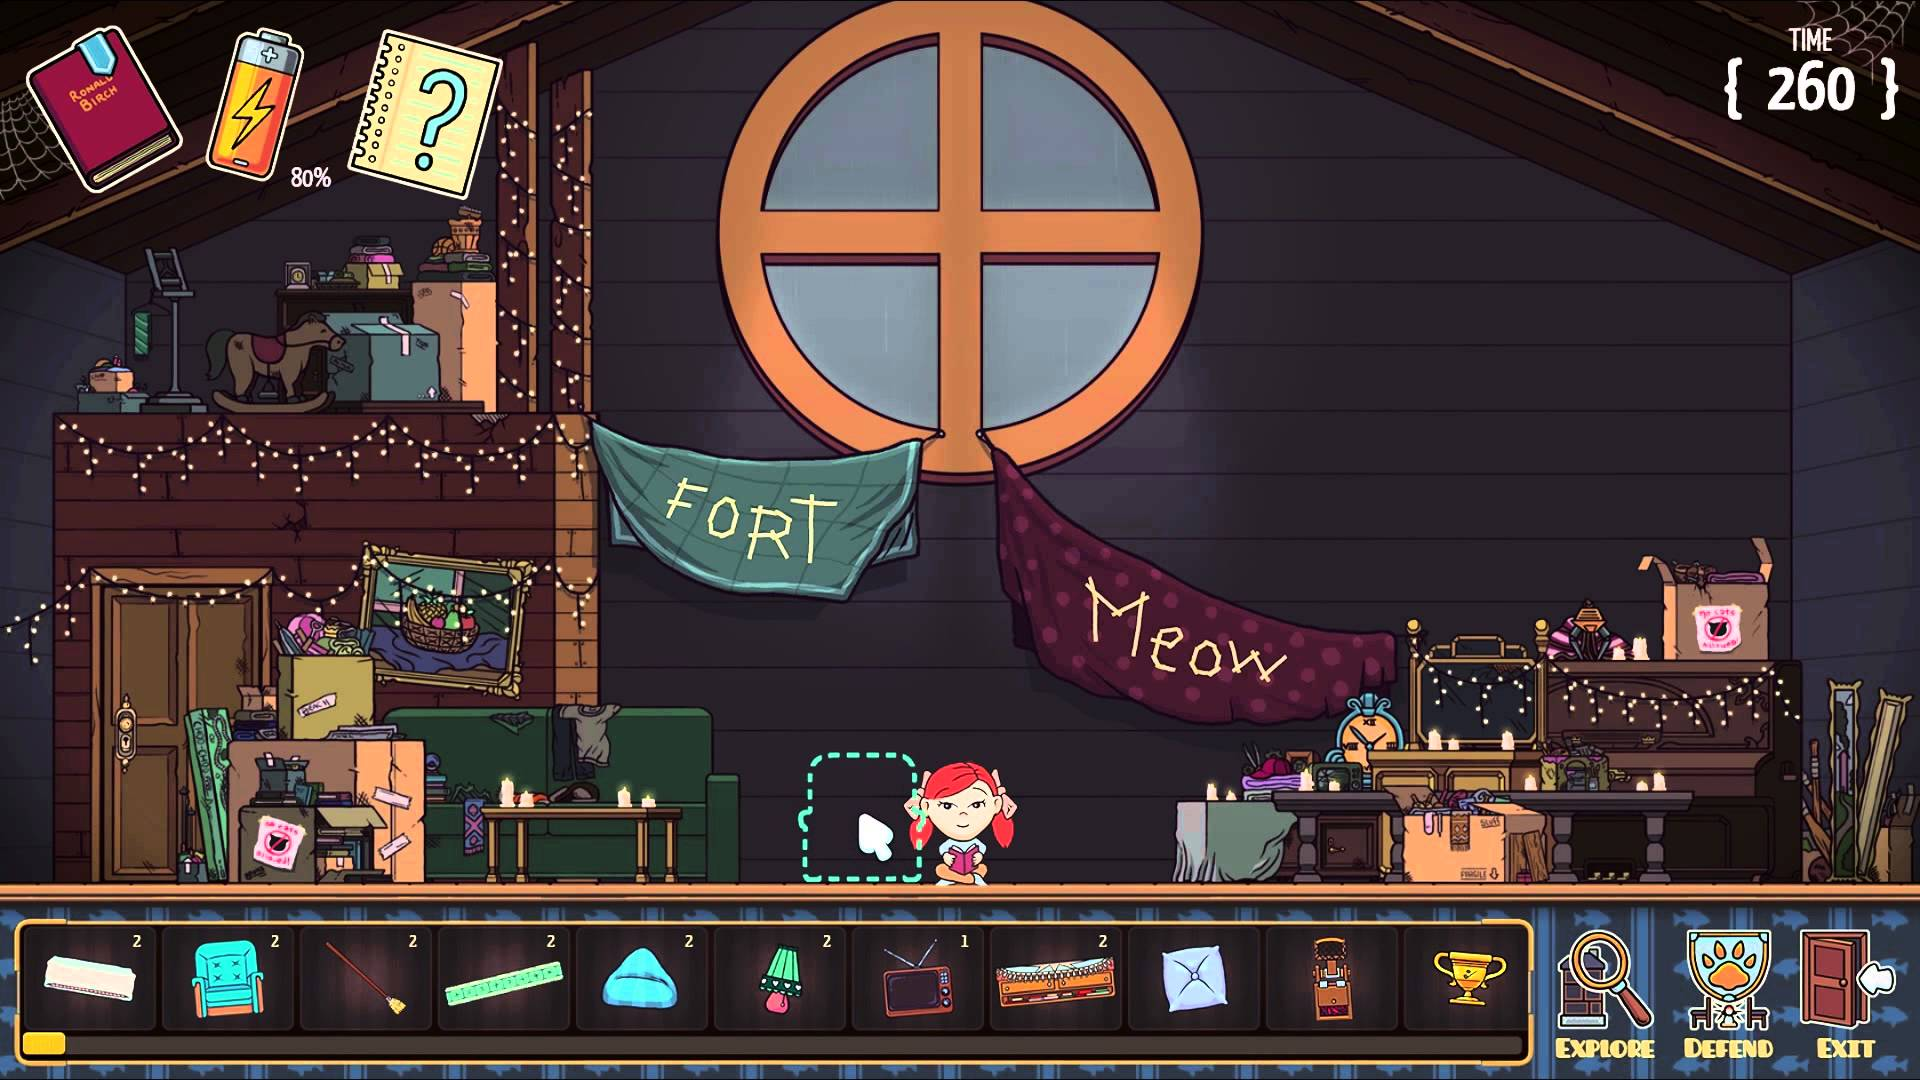 Fort Meow Backgrounds on Wallpapers Vista